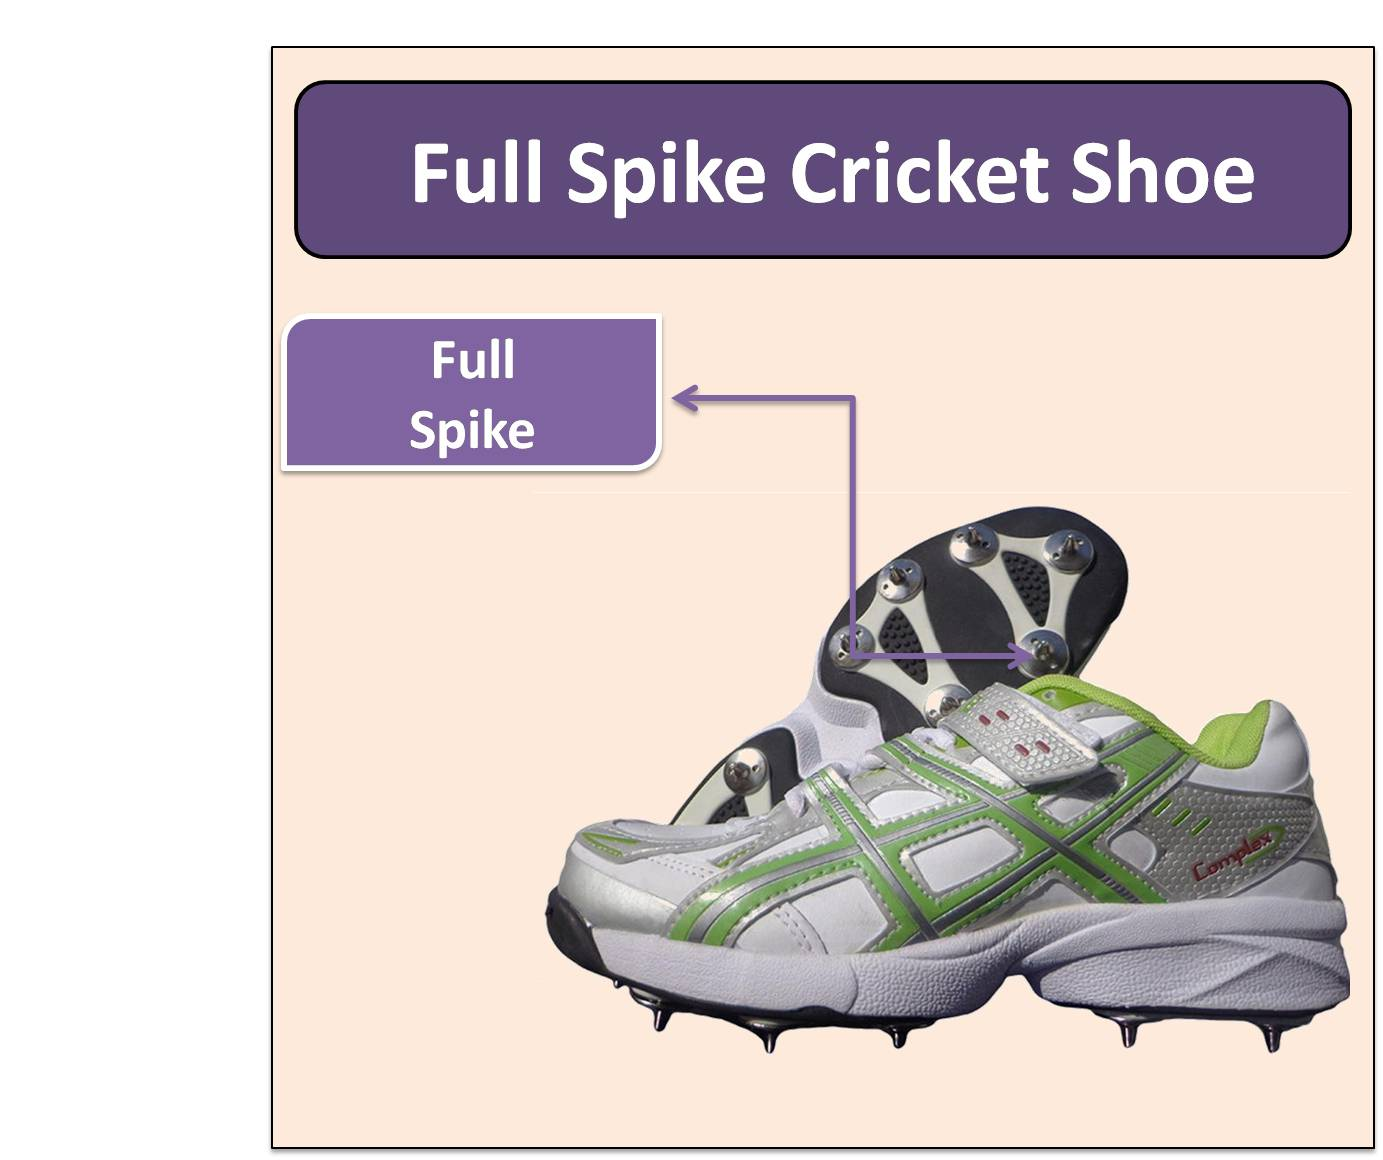 Full Spike Cricket Shoe